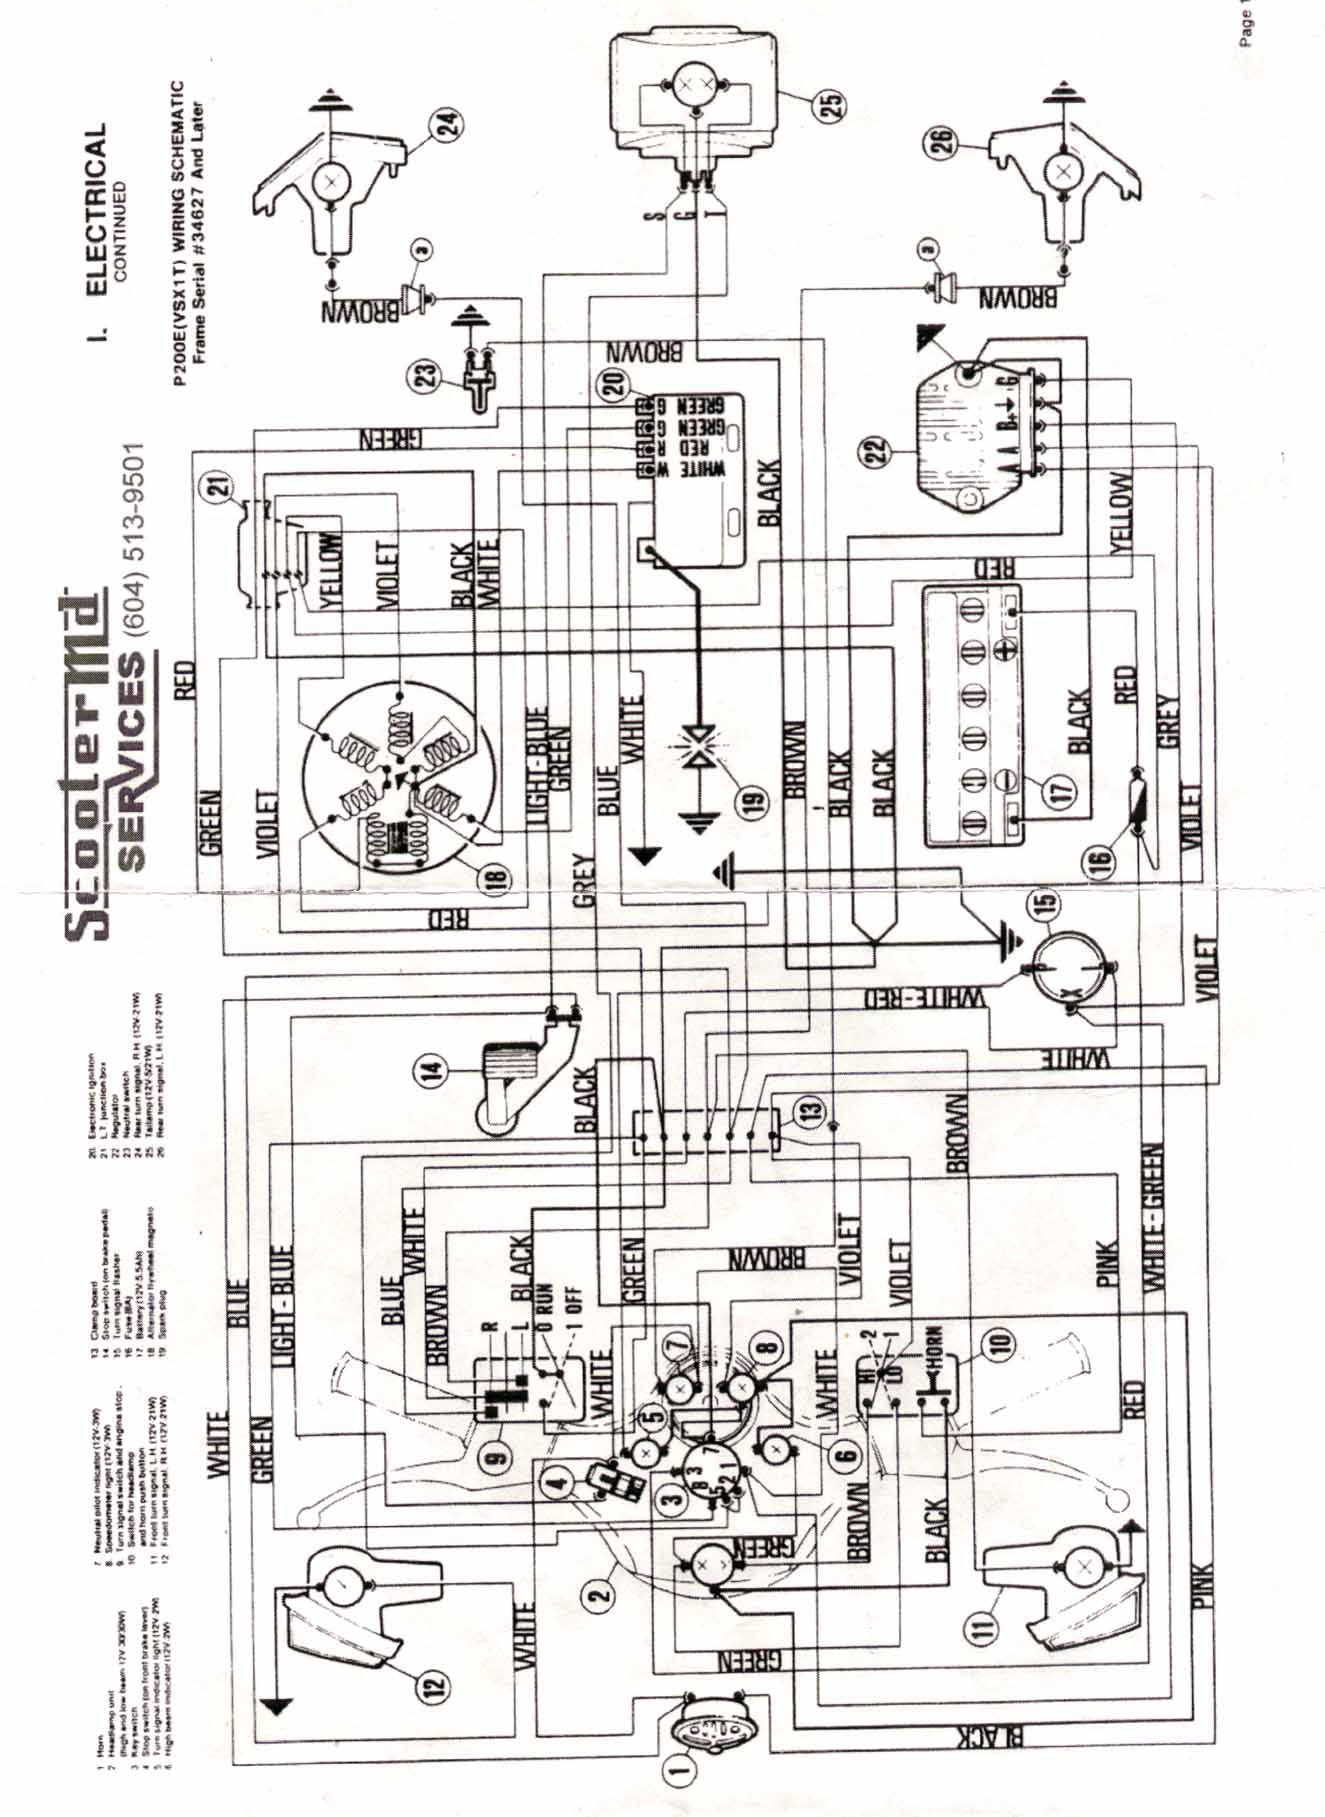 P200 Wiring Diagram Cigarette Lighter Wiring Diagram Wiring Diagram